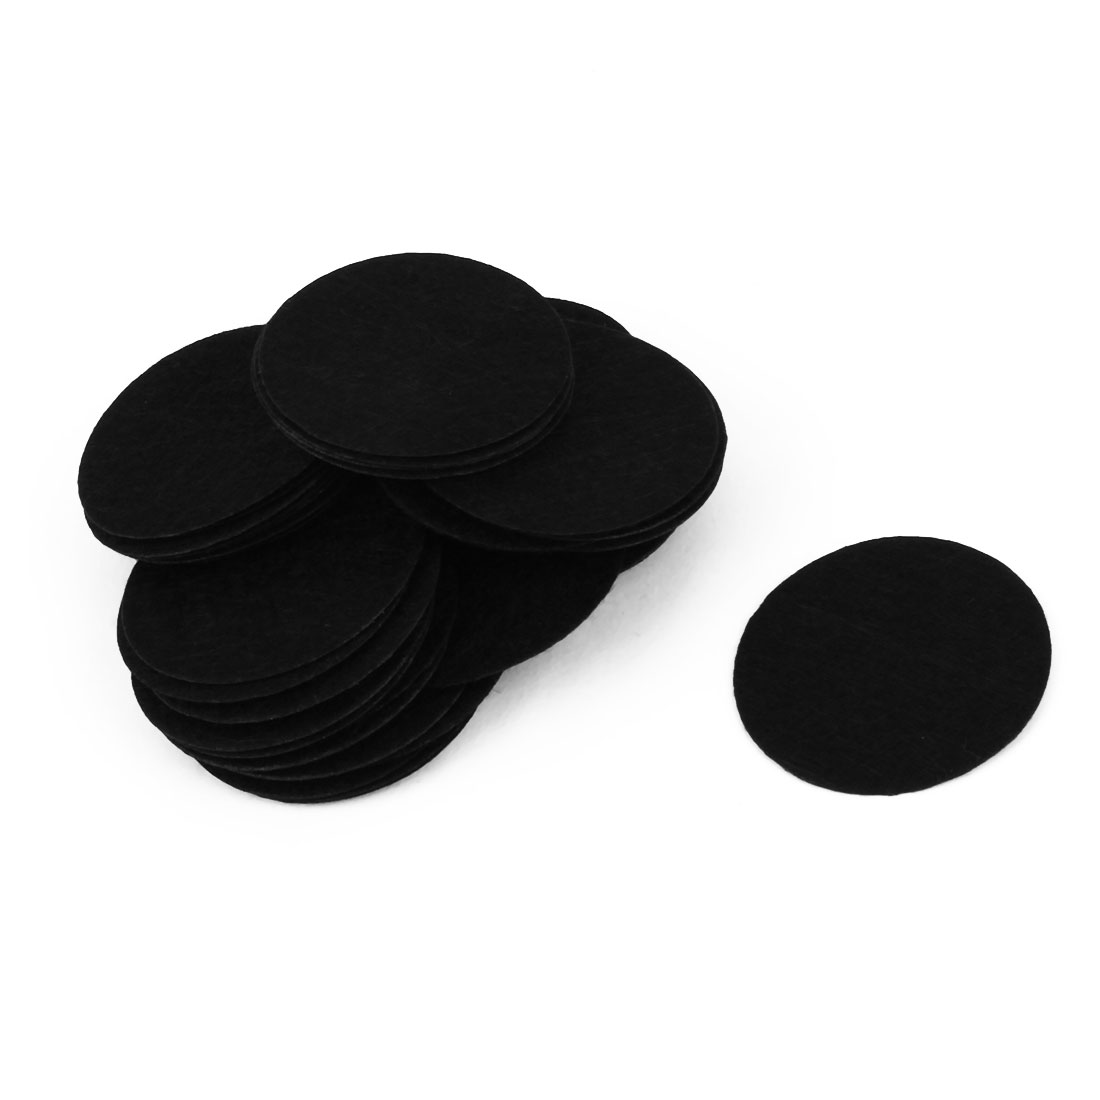 DIY Craft Accessories Round Shaped Hairband Circle Pad Black 40mm Dia 40pcs